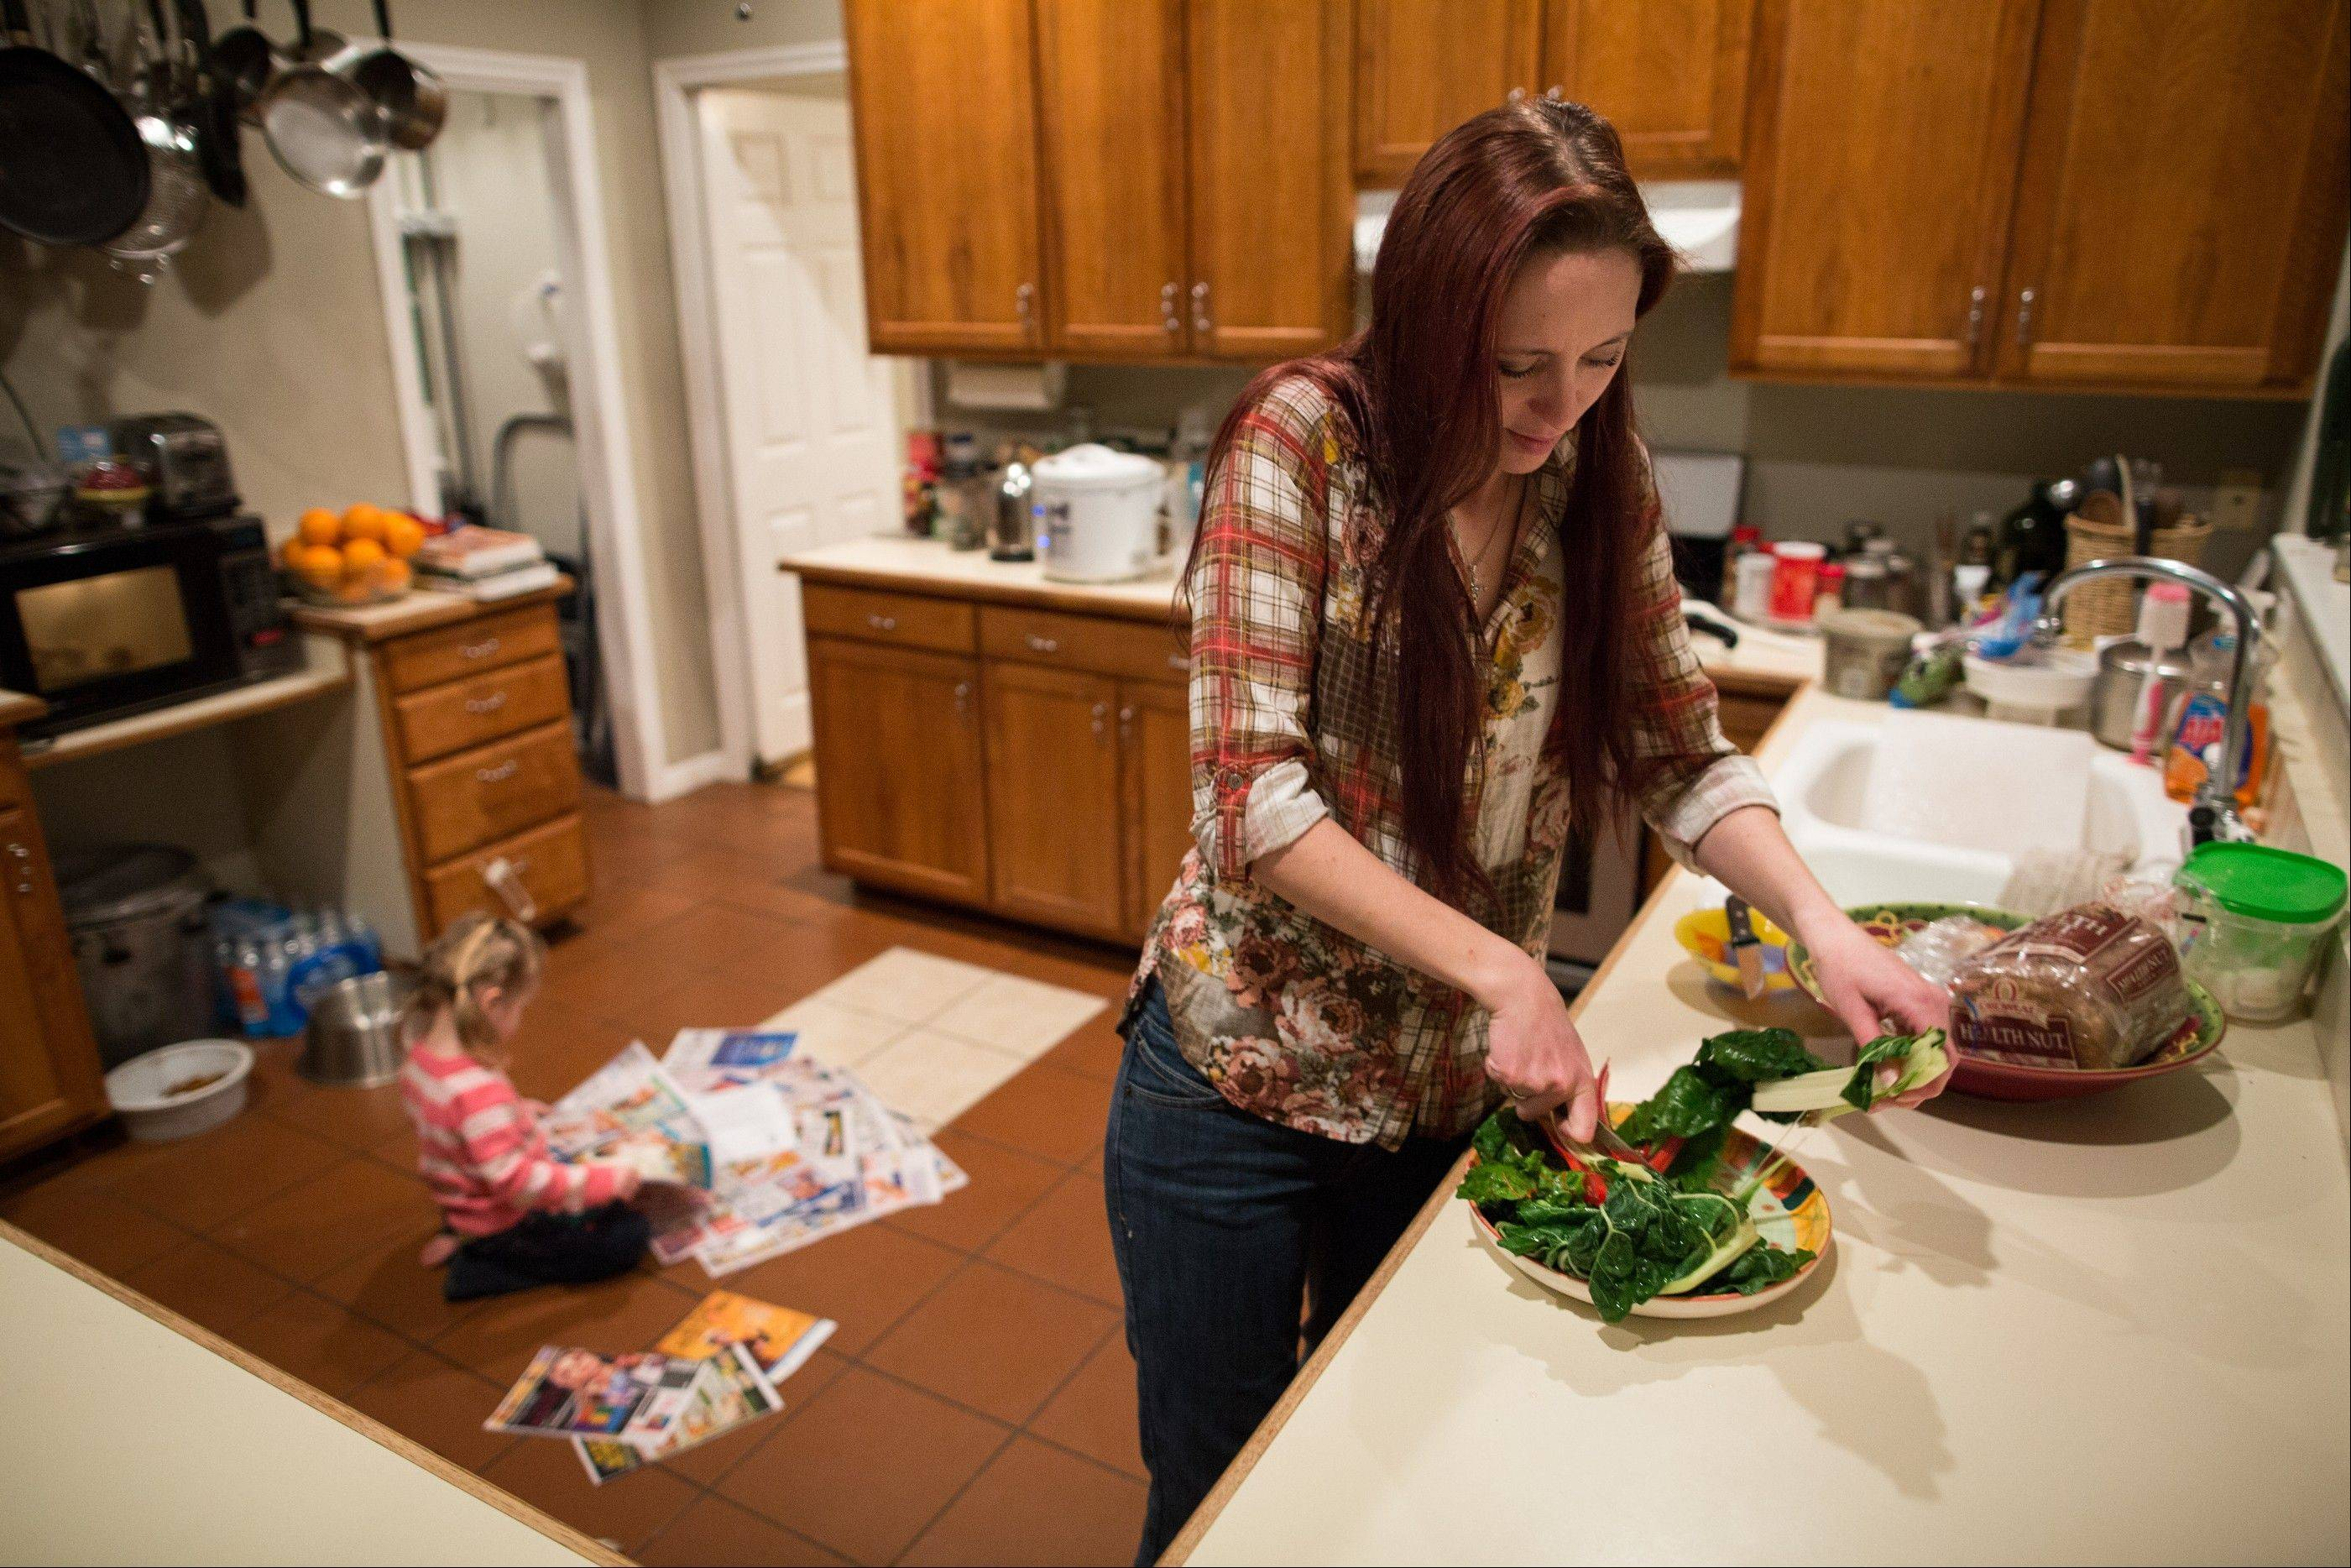 Maggie Barcellano prepares dinner at her father's house in Austin, Texas. Barcellano, who lives with her father, enrolled in the food stamps program to help save up for paramedic training while she works as a home health aide and raises her three-year-old daughter.